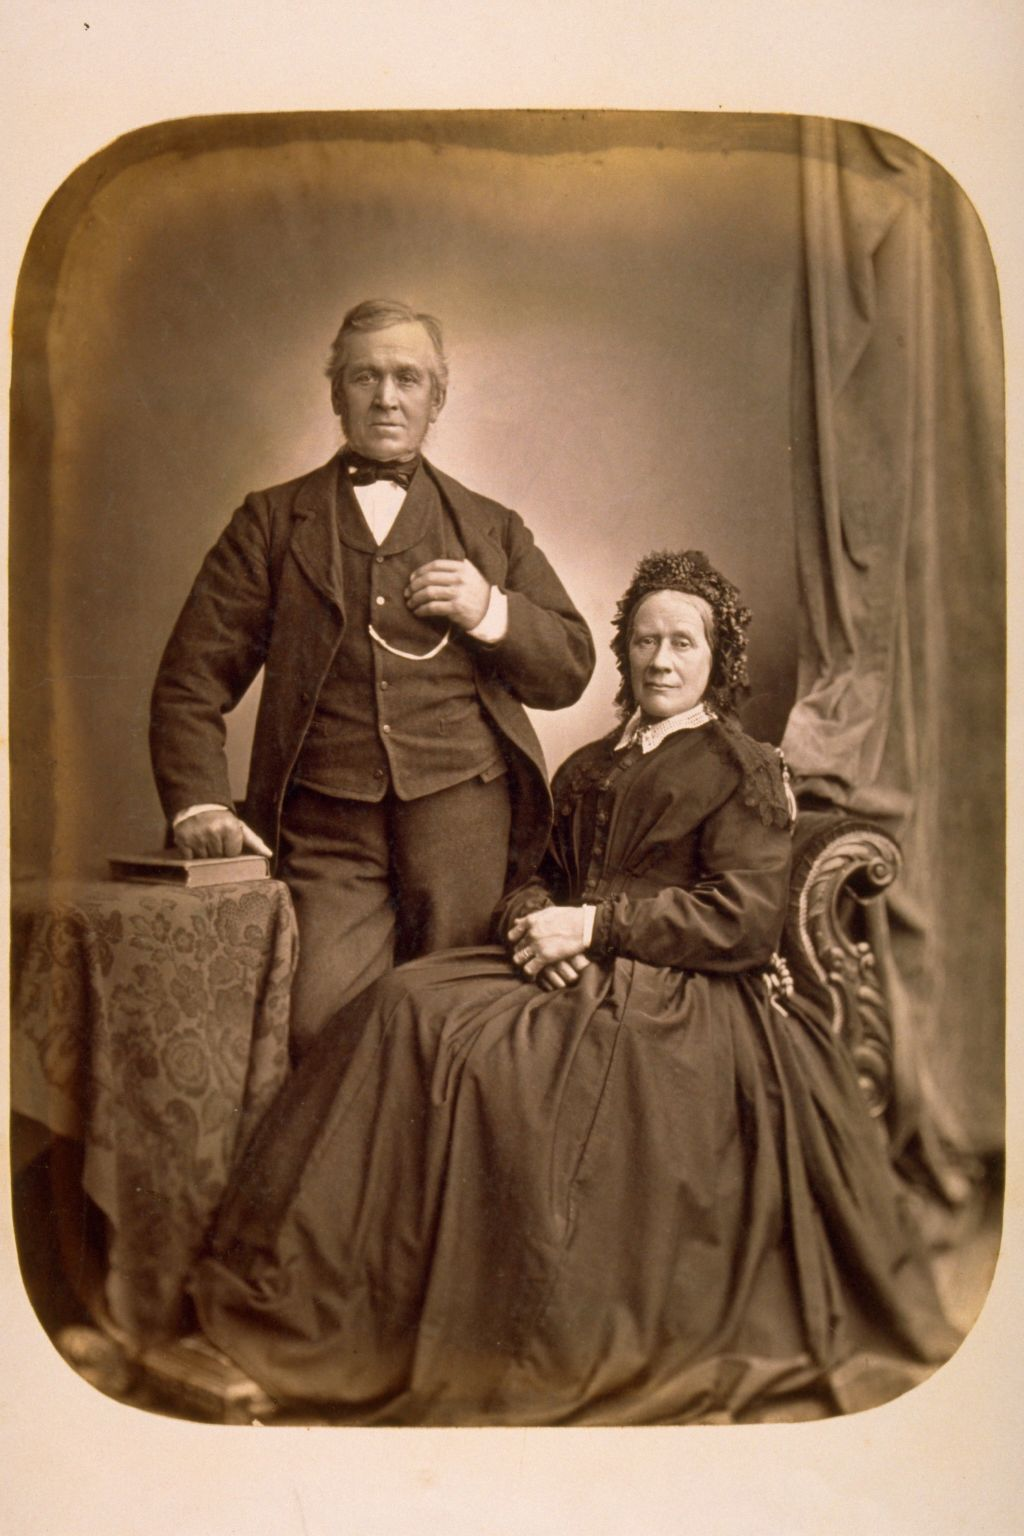 [Unidentified man and woman].